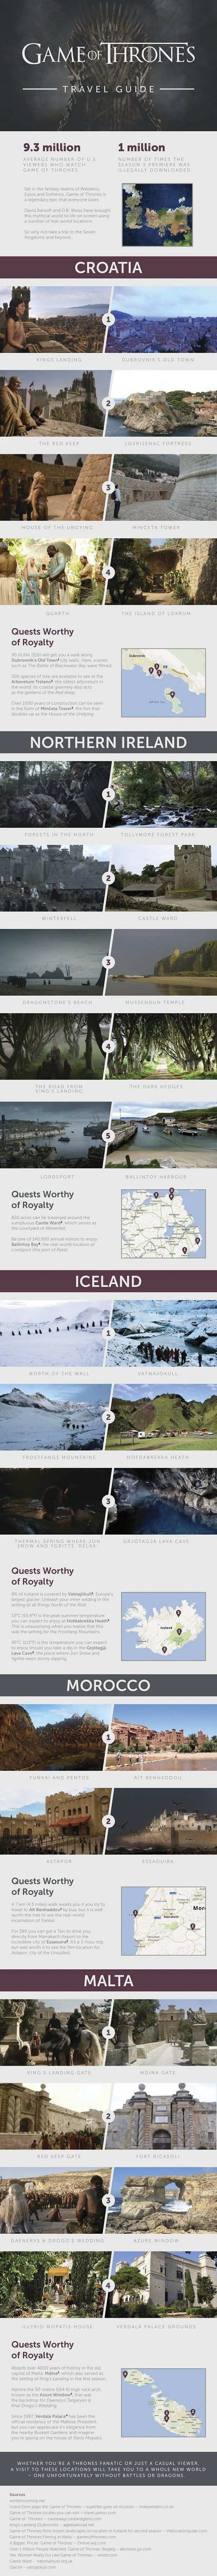 Game of Thrones on location travel guide